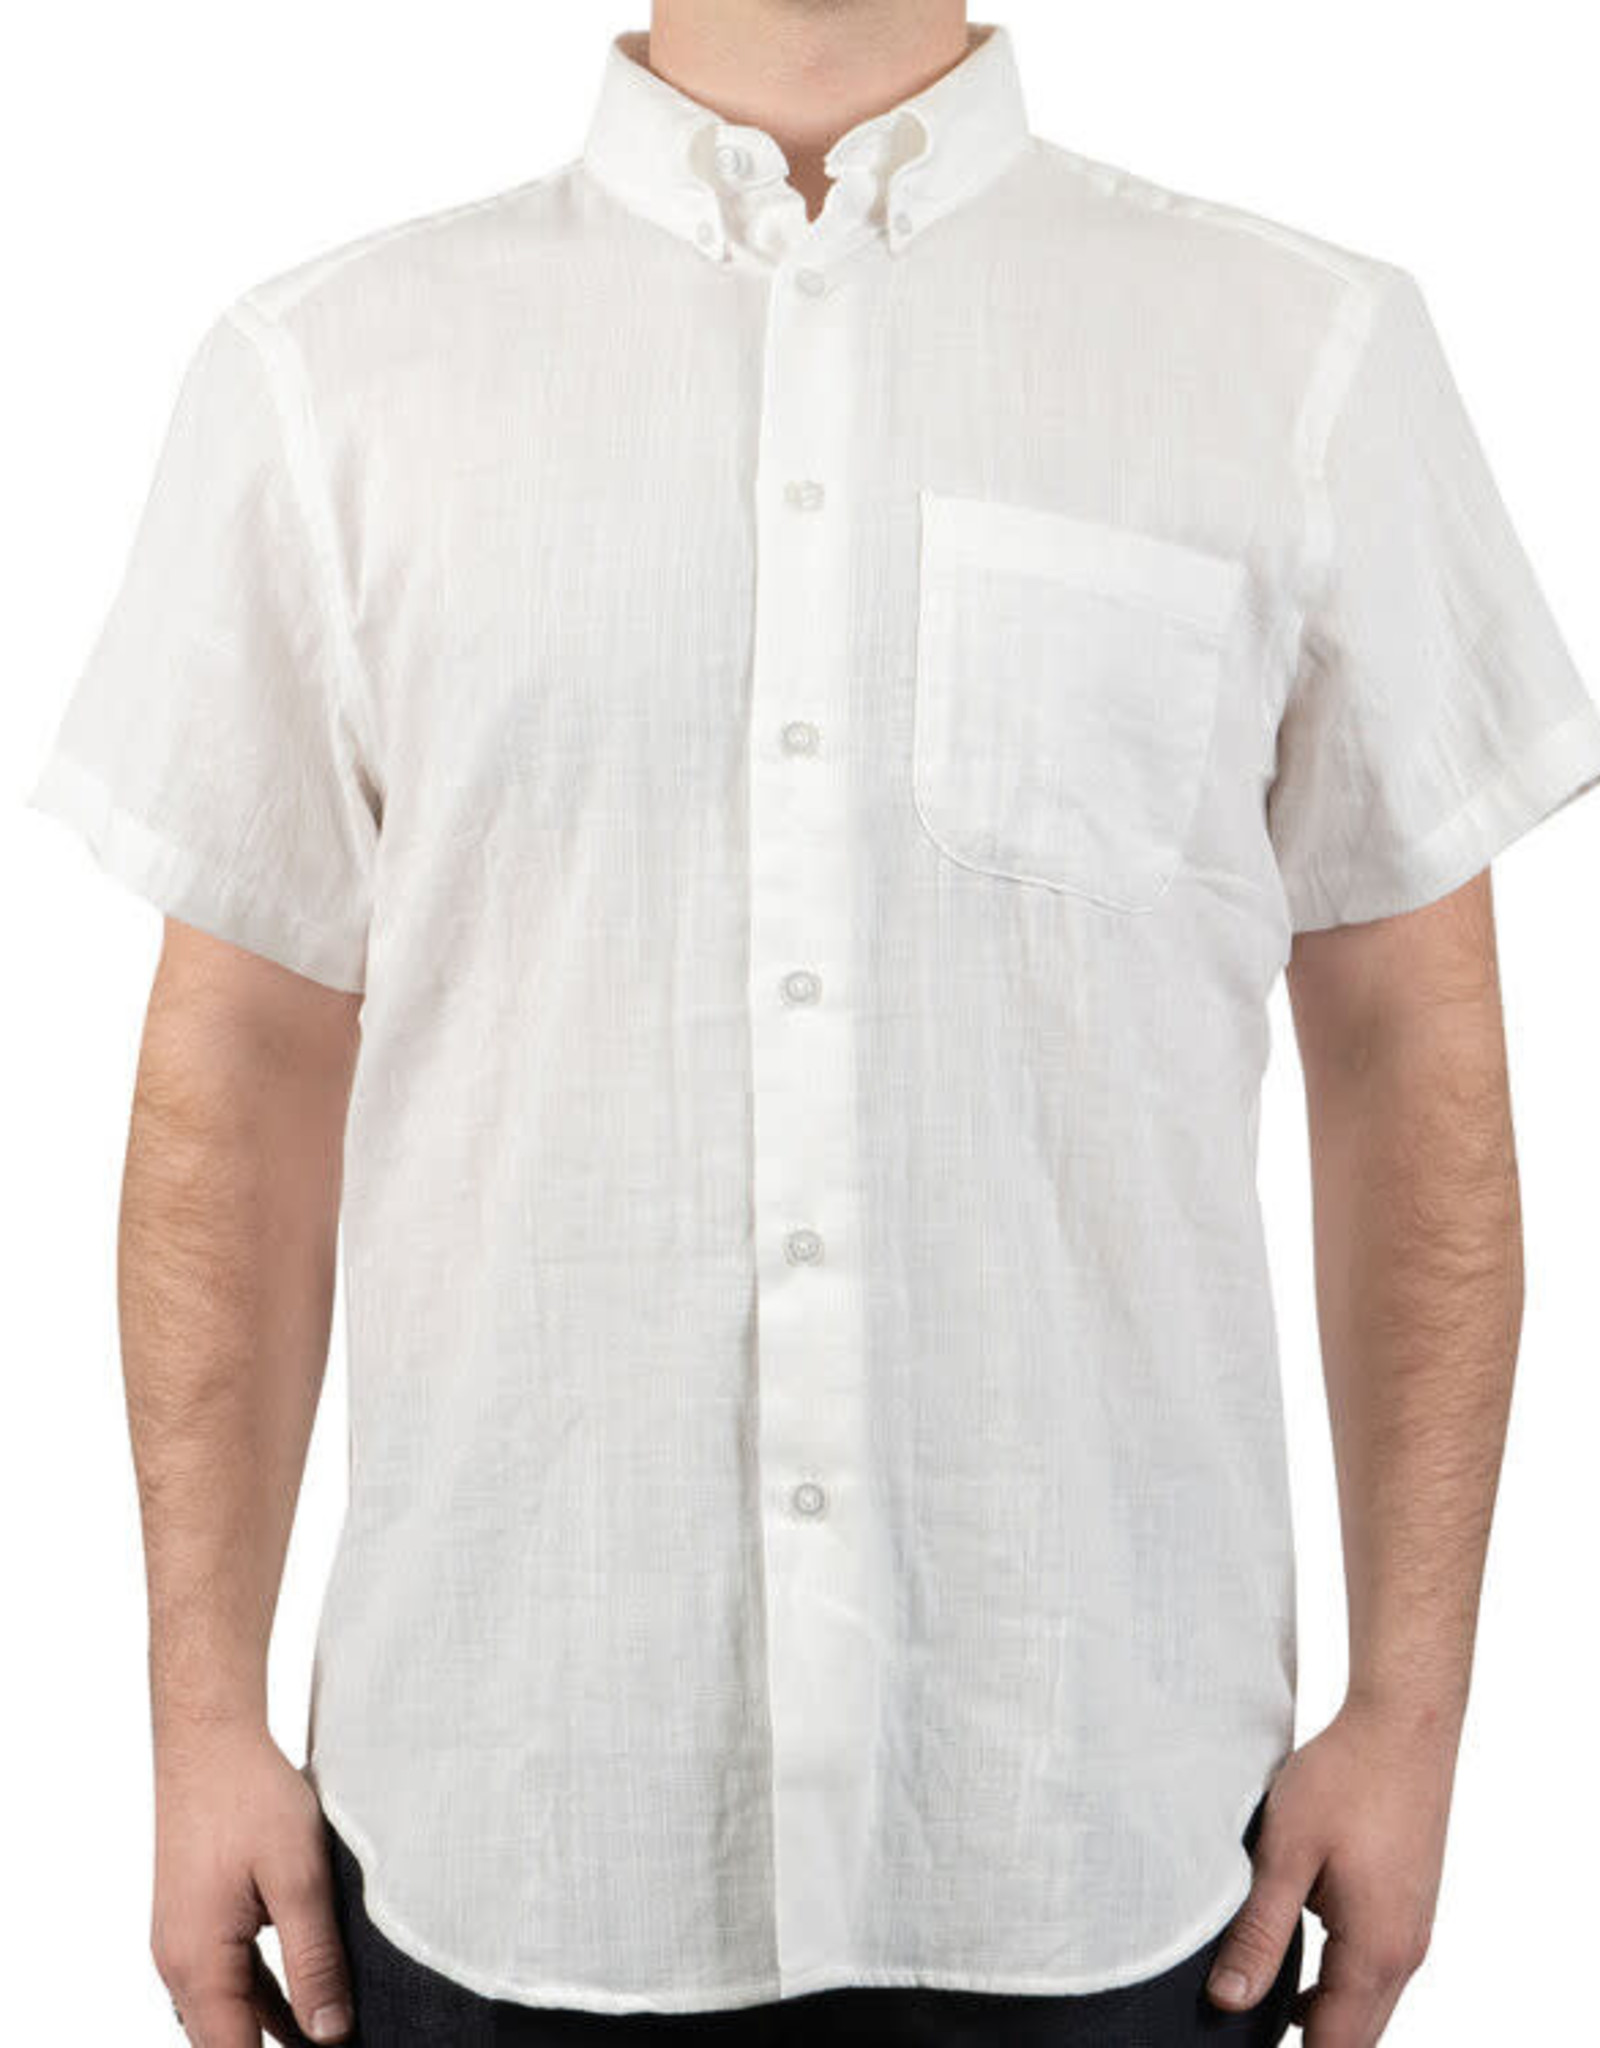 Naked and Famous Easy Shirt PE20 Naked & Famous Double Weave Gauze White